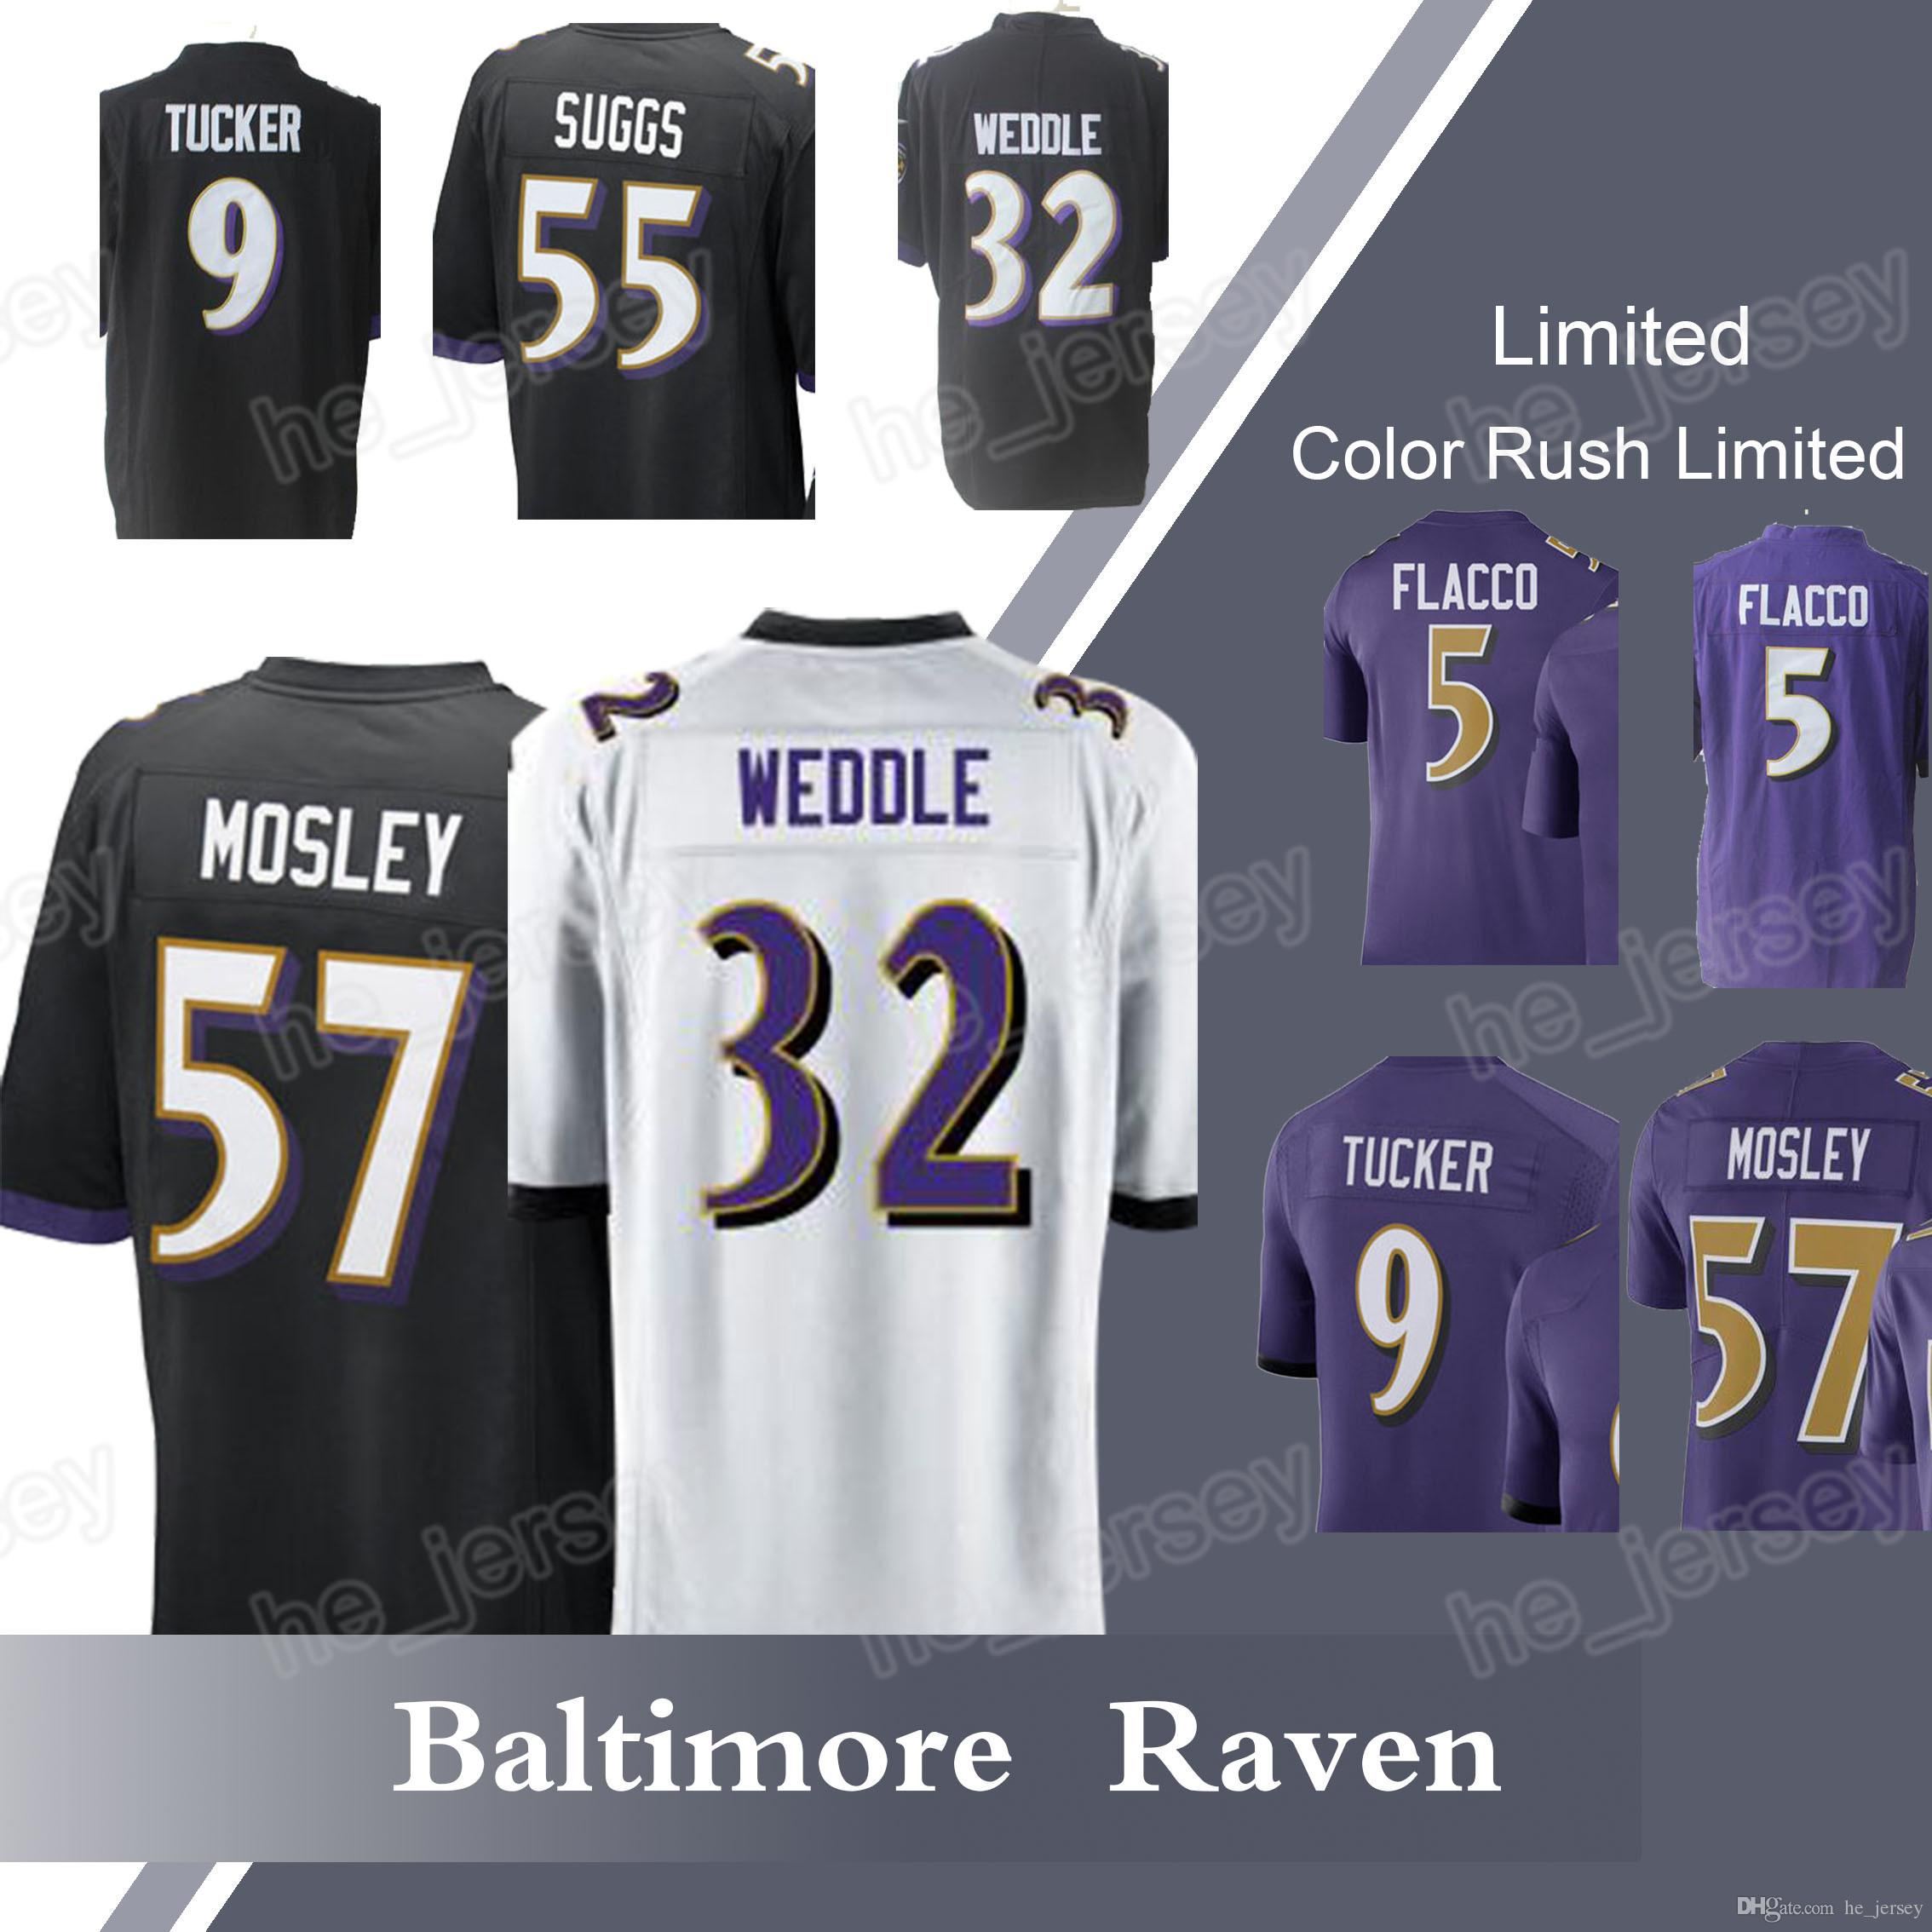 separation shoes 8eedf 288fe norway baltimore ravens 9 justin tucker green stitched ...